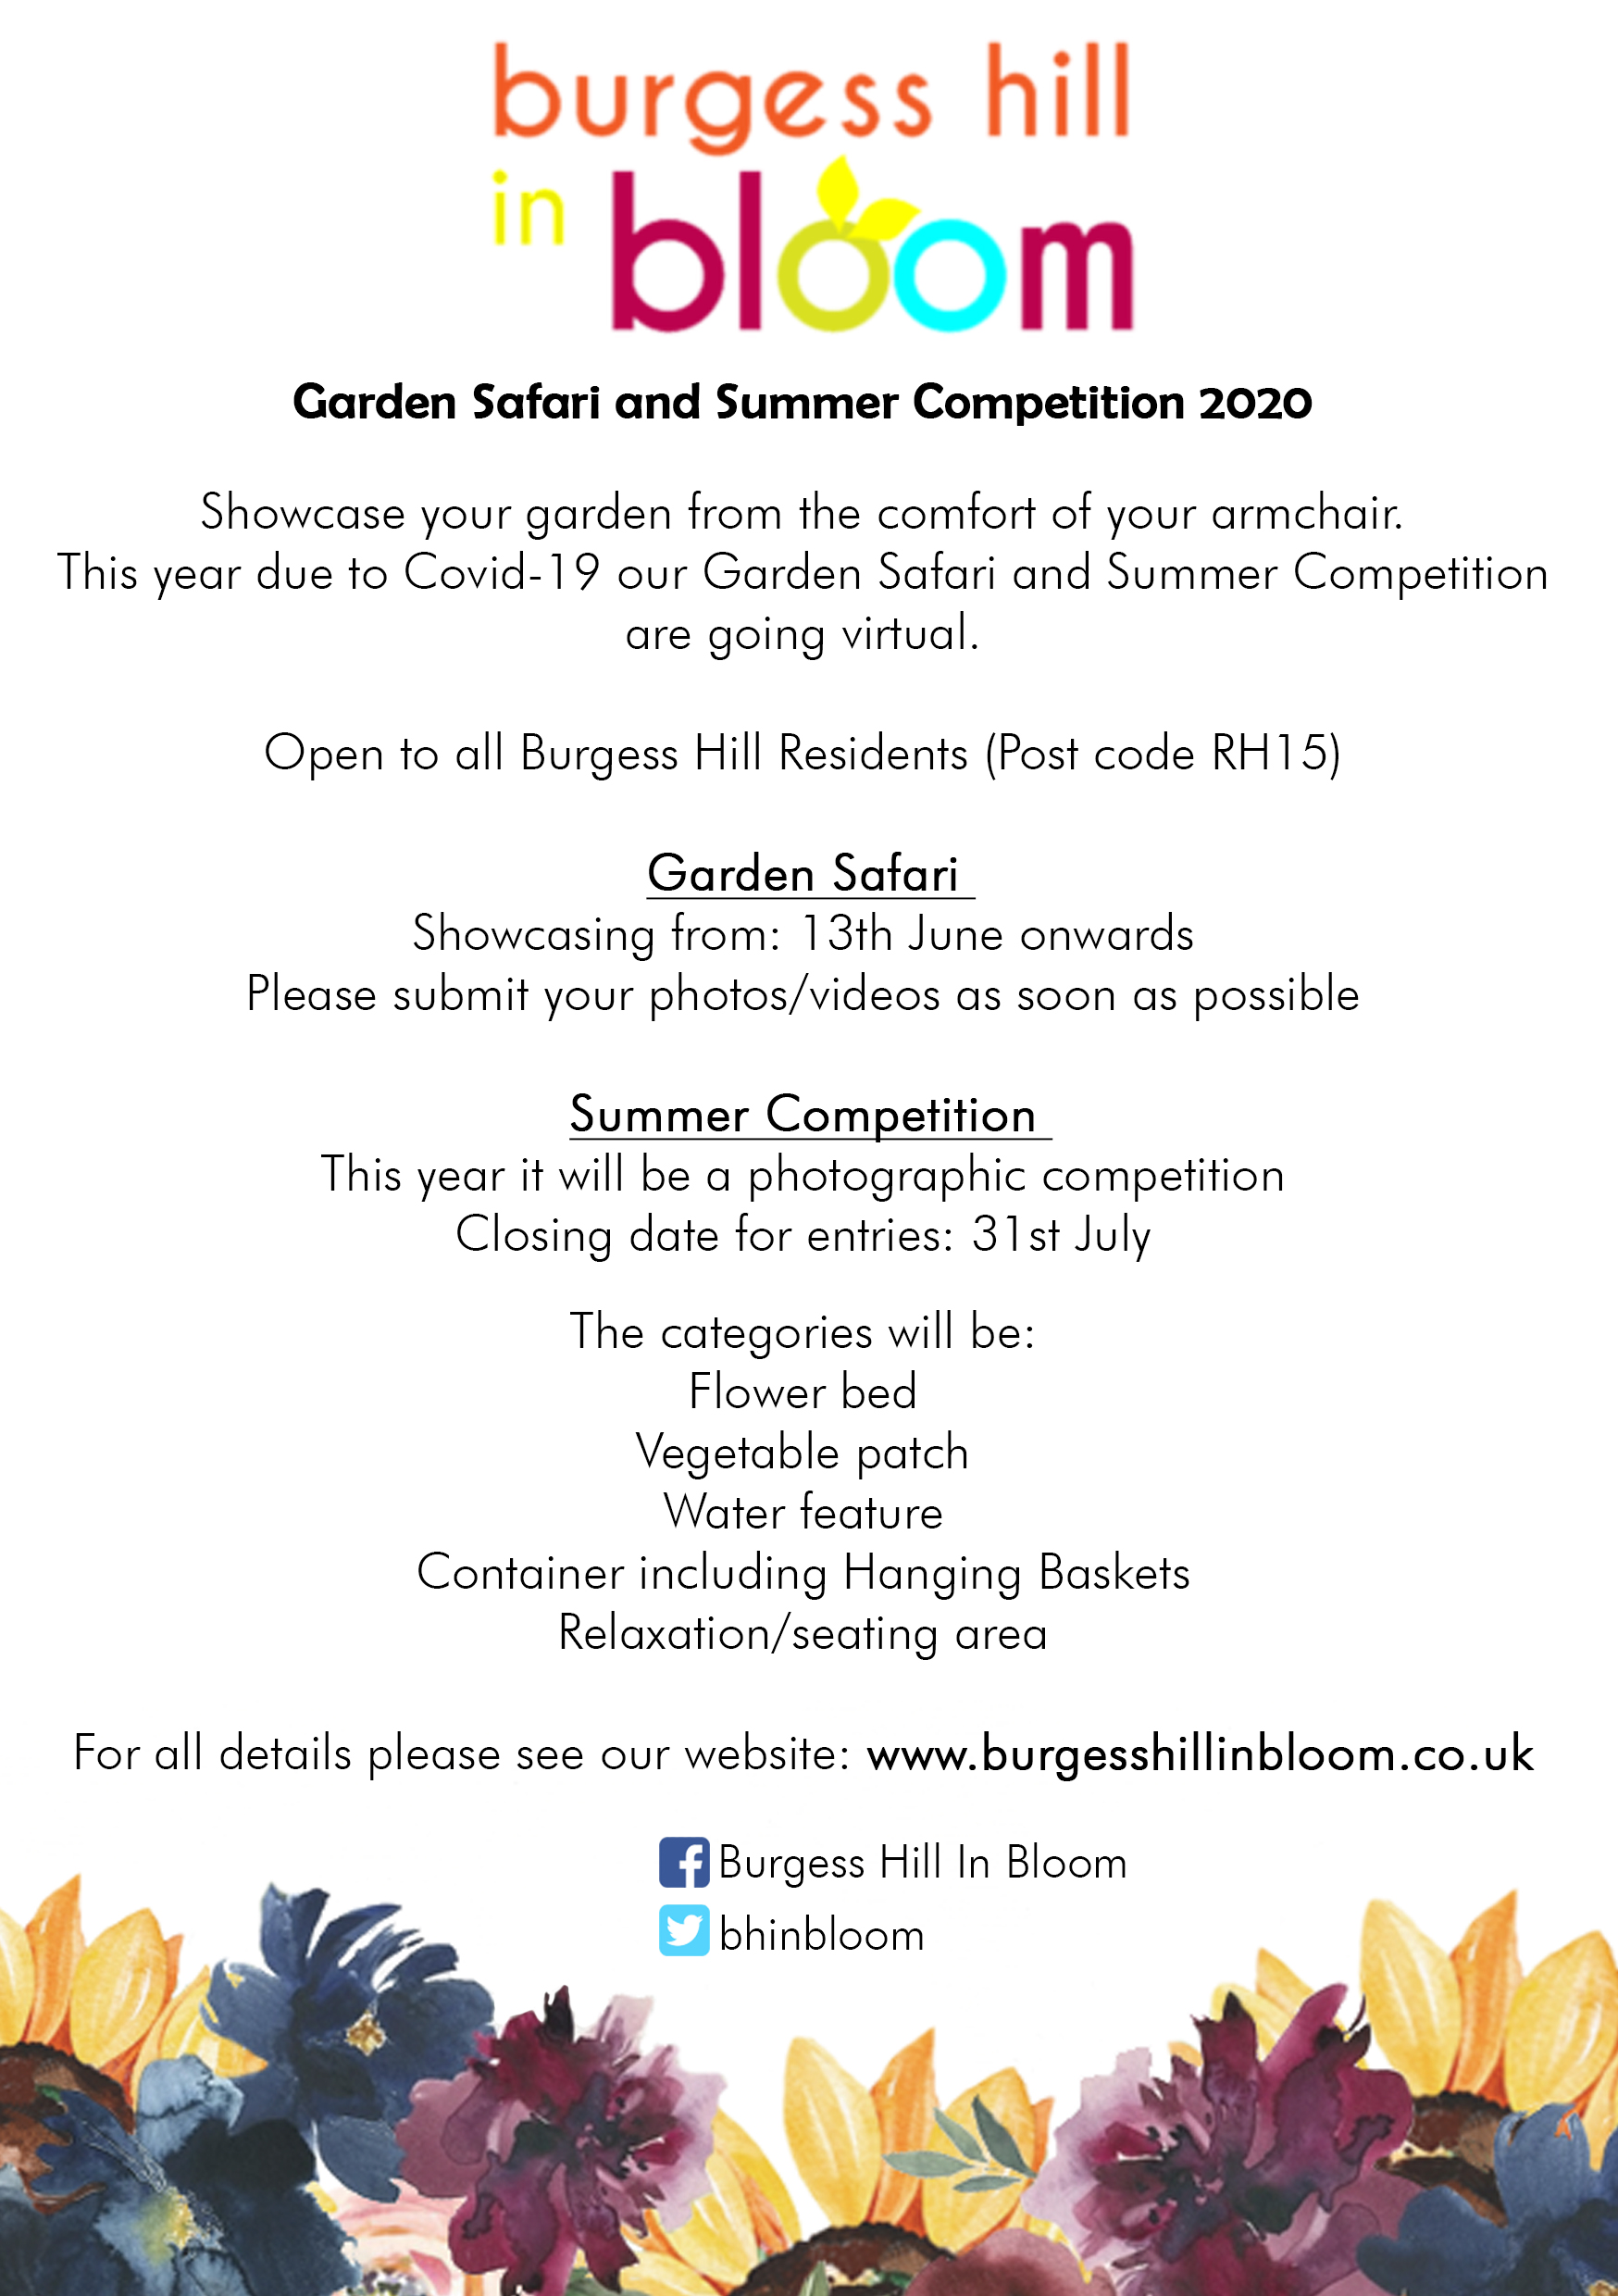 Burgess Hill in Bloom Virtual Garden Safari and Summer Competition